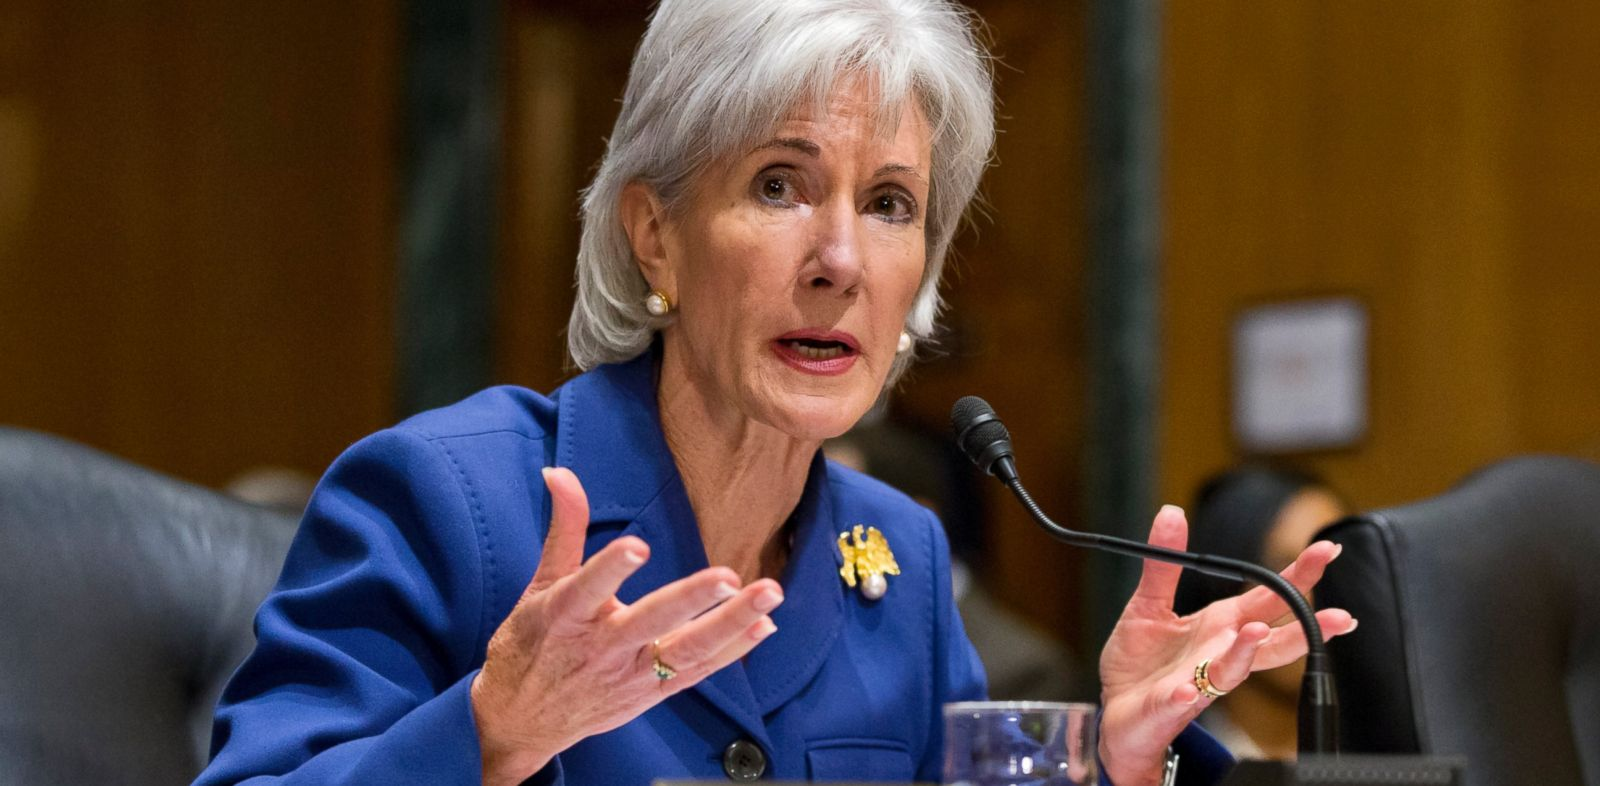 PHOTO: Health and Human Services Secretary Kathleen Sebelius testifies on Capitol Hill in Washington on Nov. 6, 2013, before the Senate Finance Committee hearing on the difficulties plaguing the implementation of the Affordable Care Act.